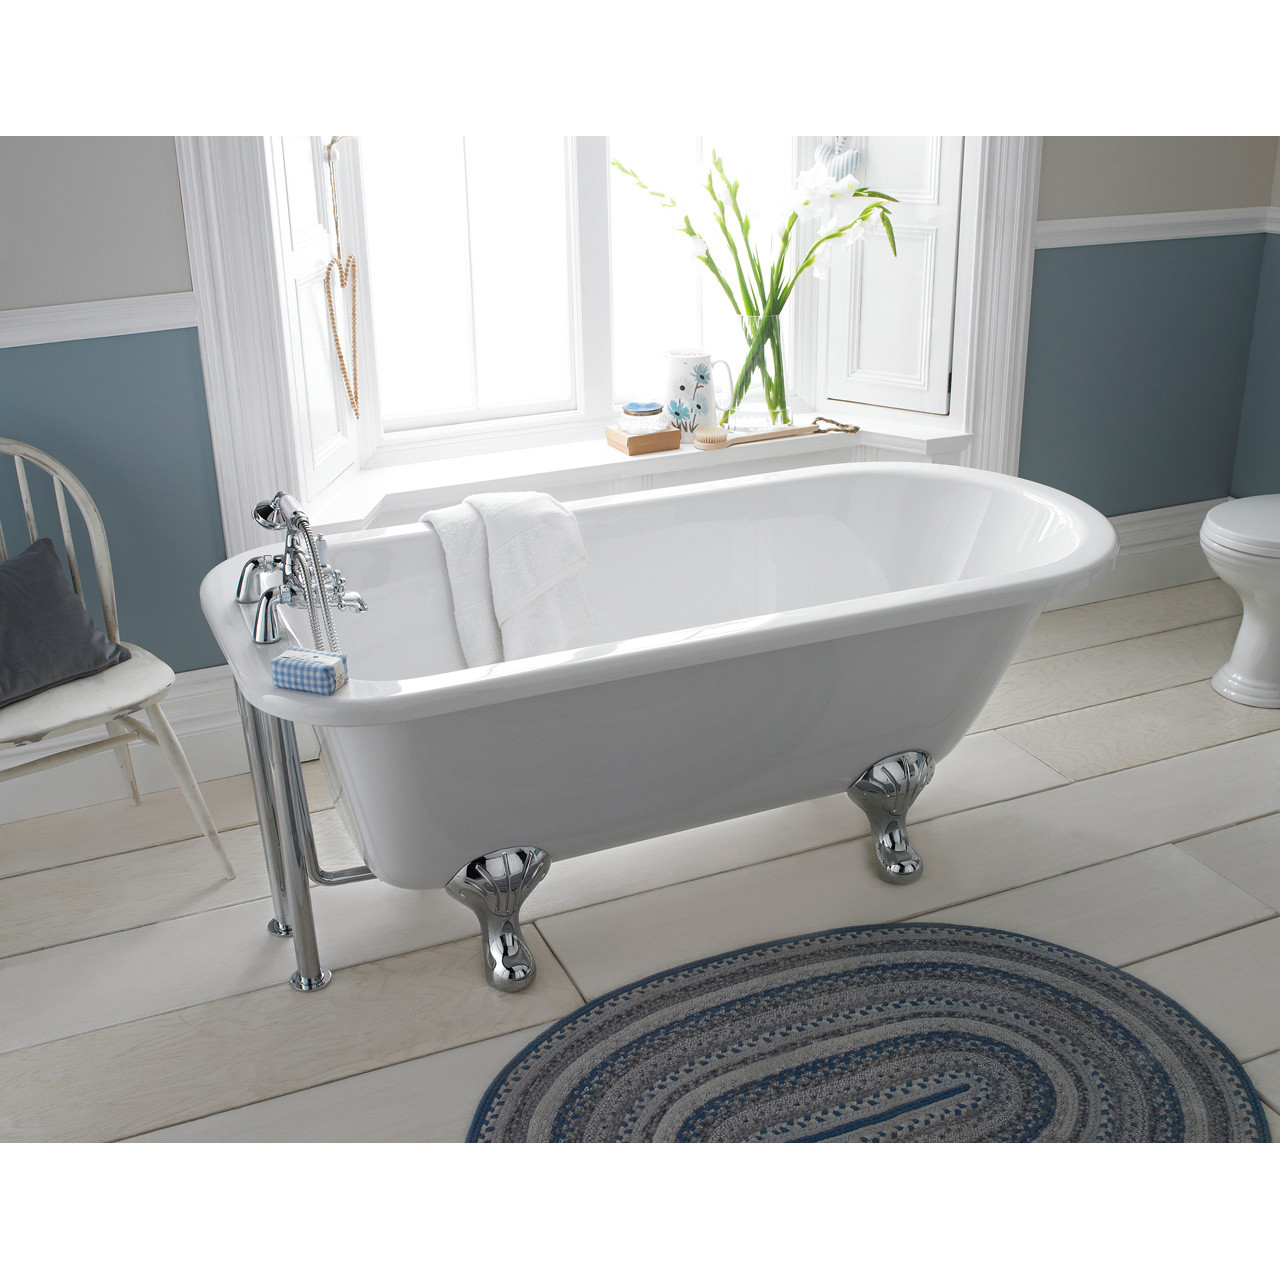 Nuie Barnsbury 1700mm Single Ended Freestanding Bath with Pride Legs - RL1707C2